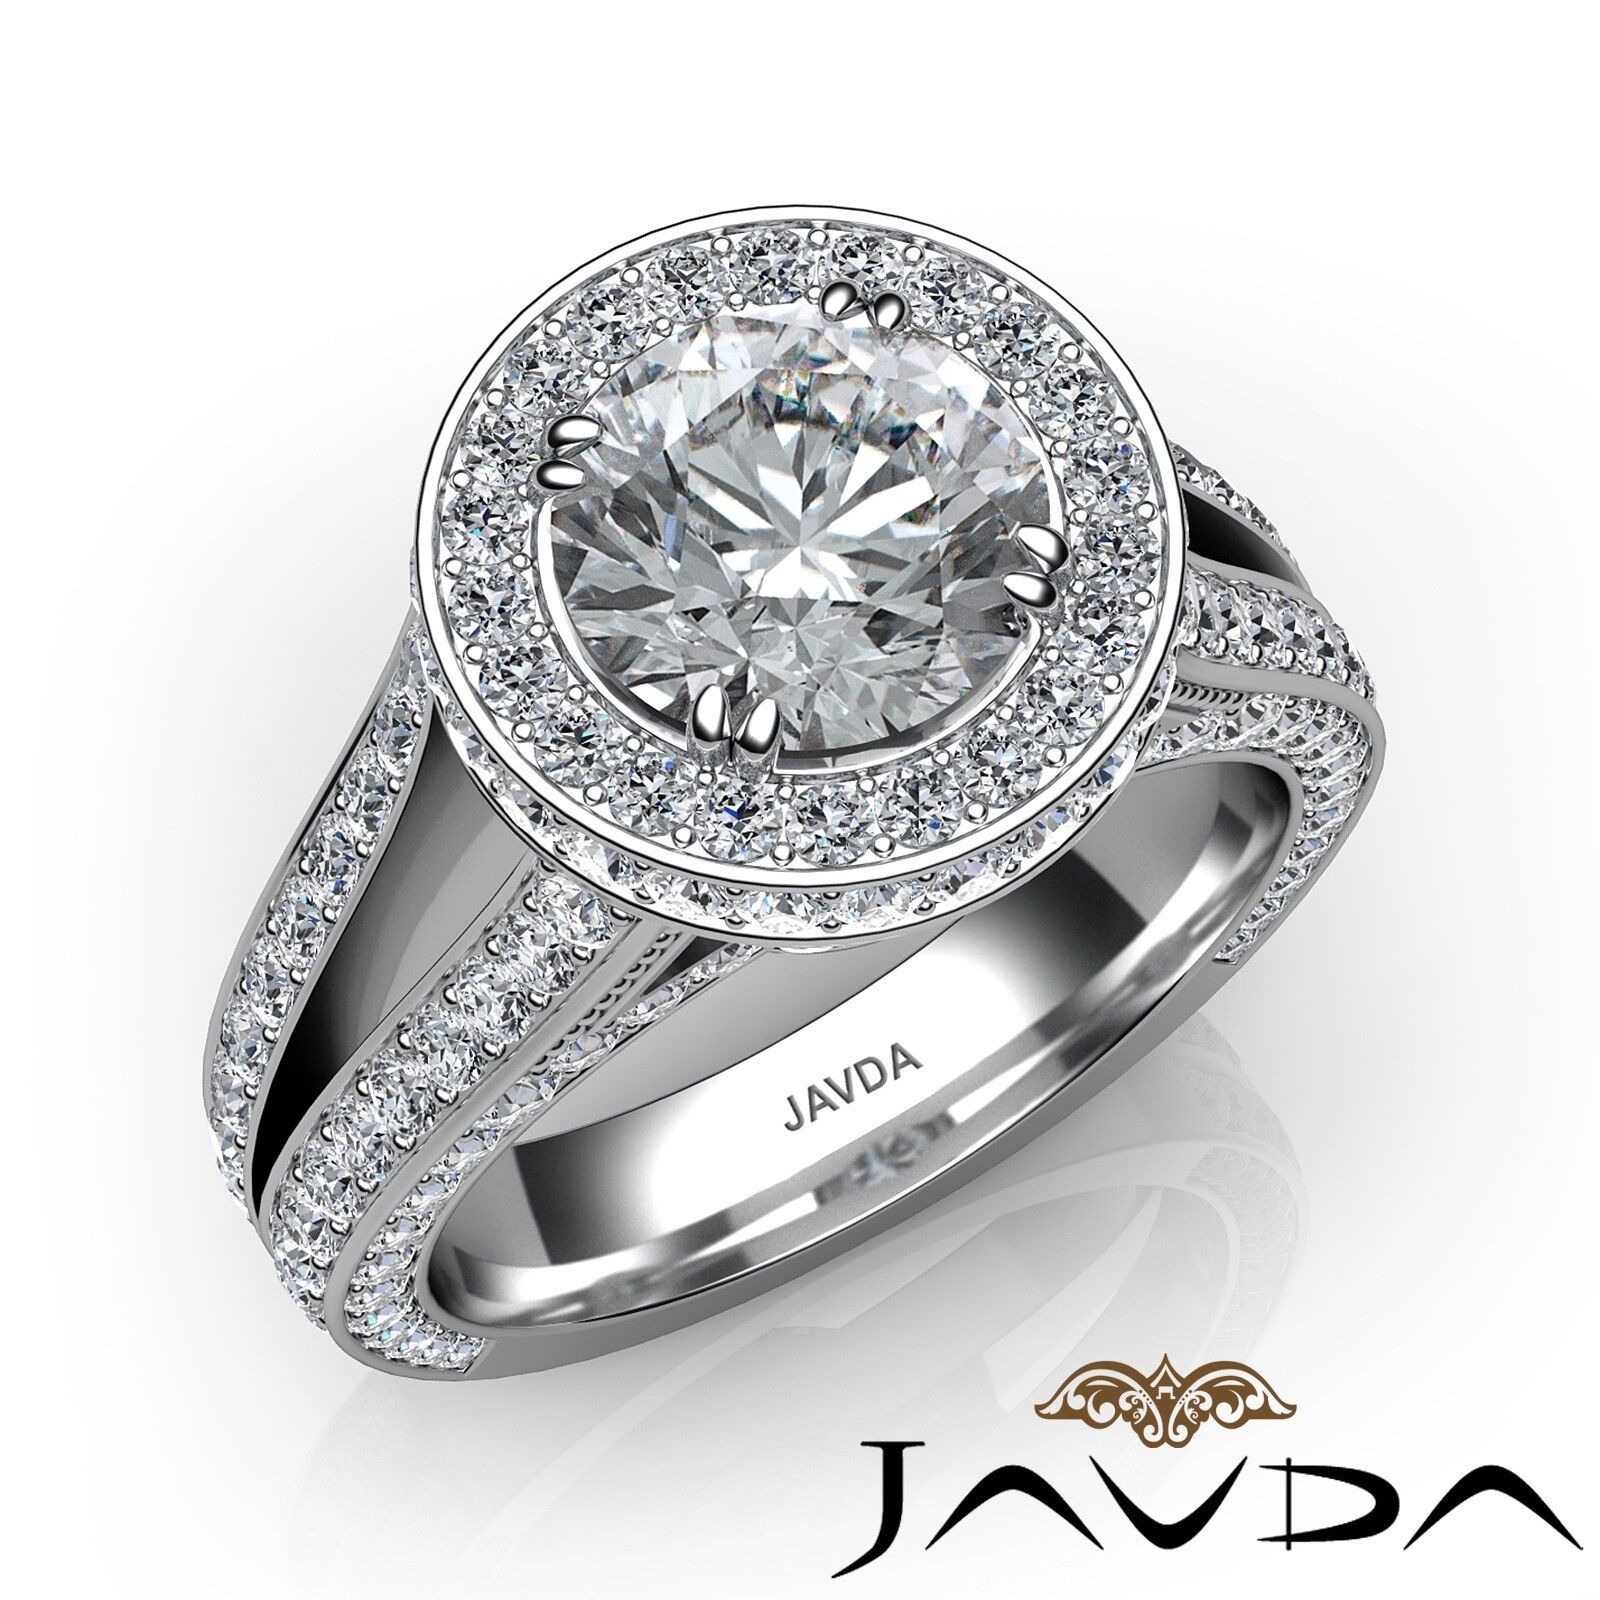 3.31ct Halo Pave Split Shank Bridge Round Diamond Engagement Ring GIA E-SI1 Gold